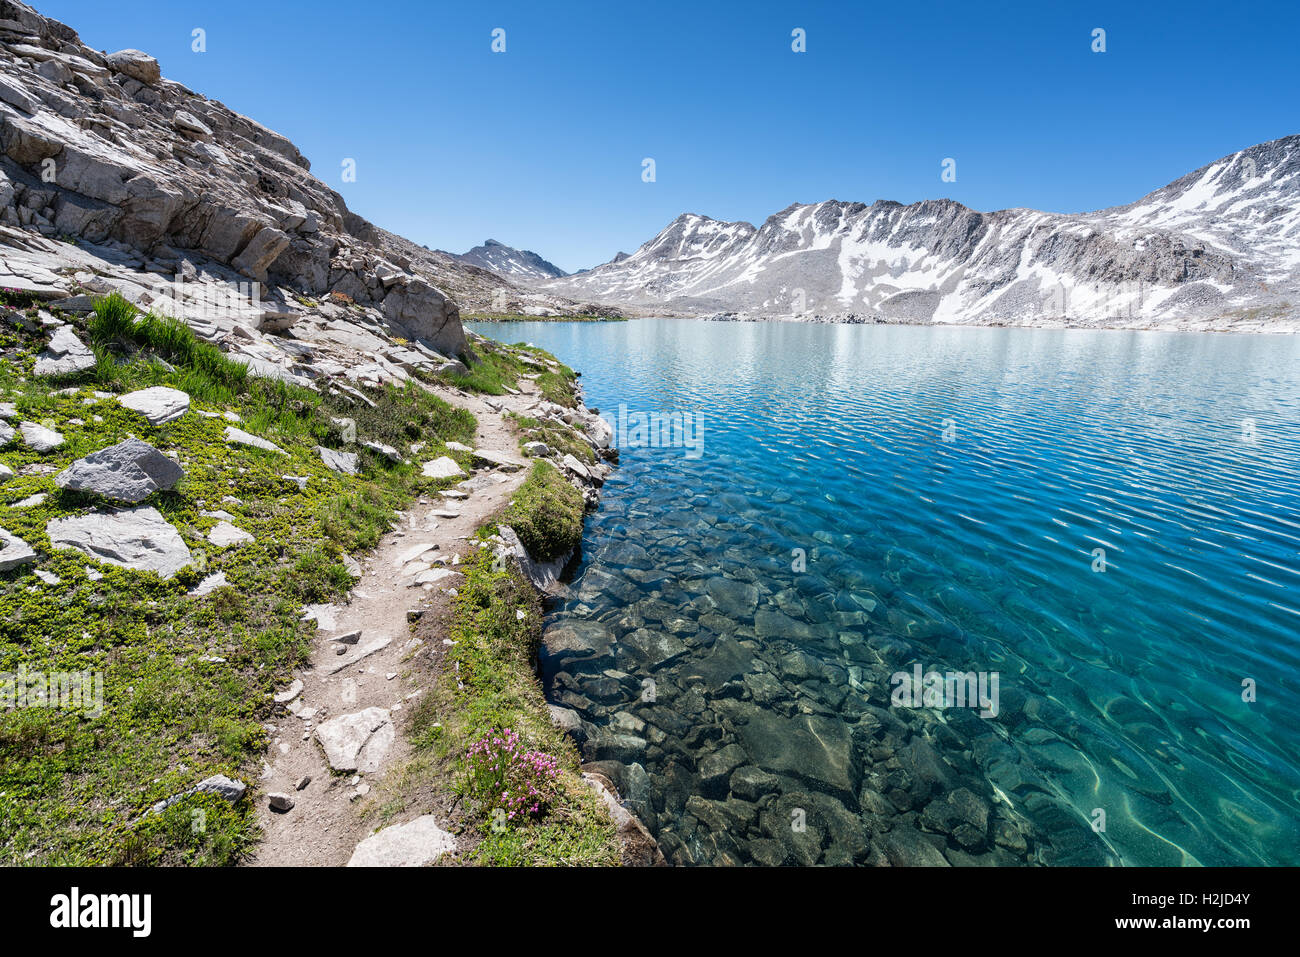 Wanda Lake Sierra Nevada Mountains California United States Of - United states mountains